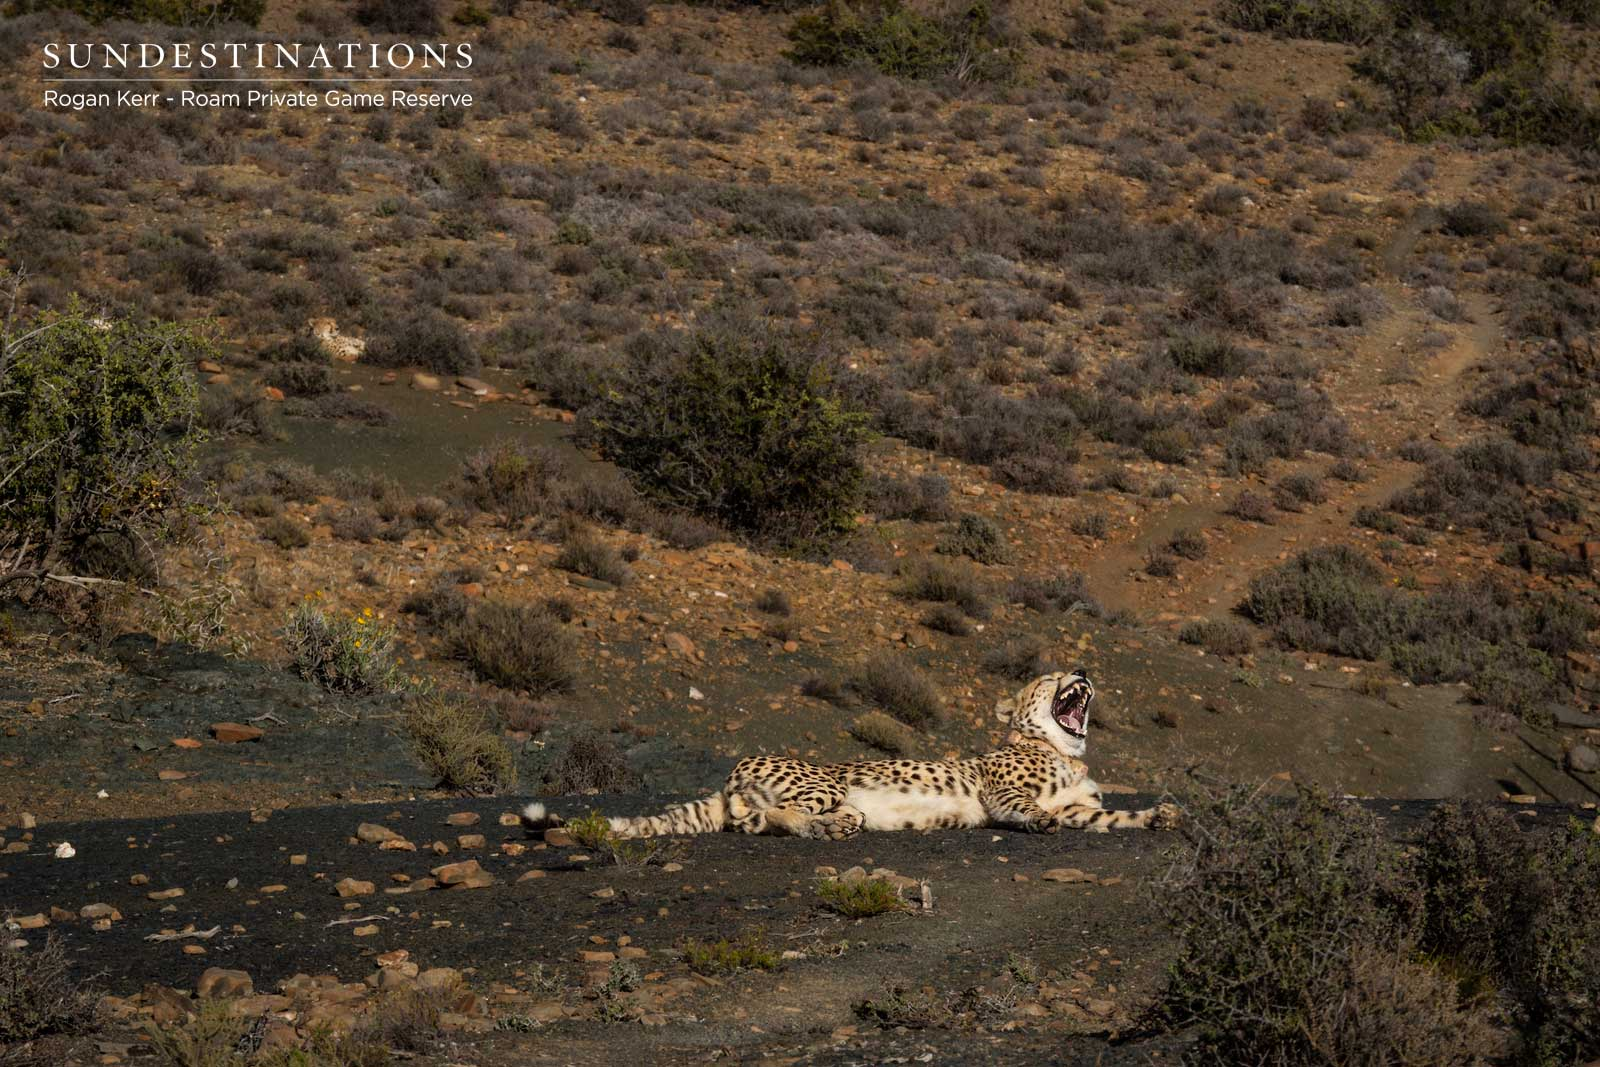 Cheetah in the Great Karoo